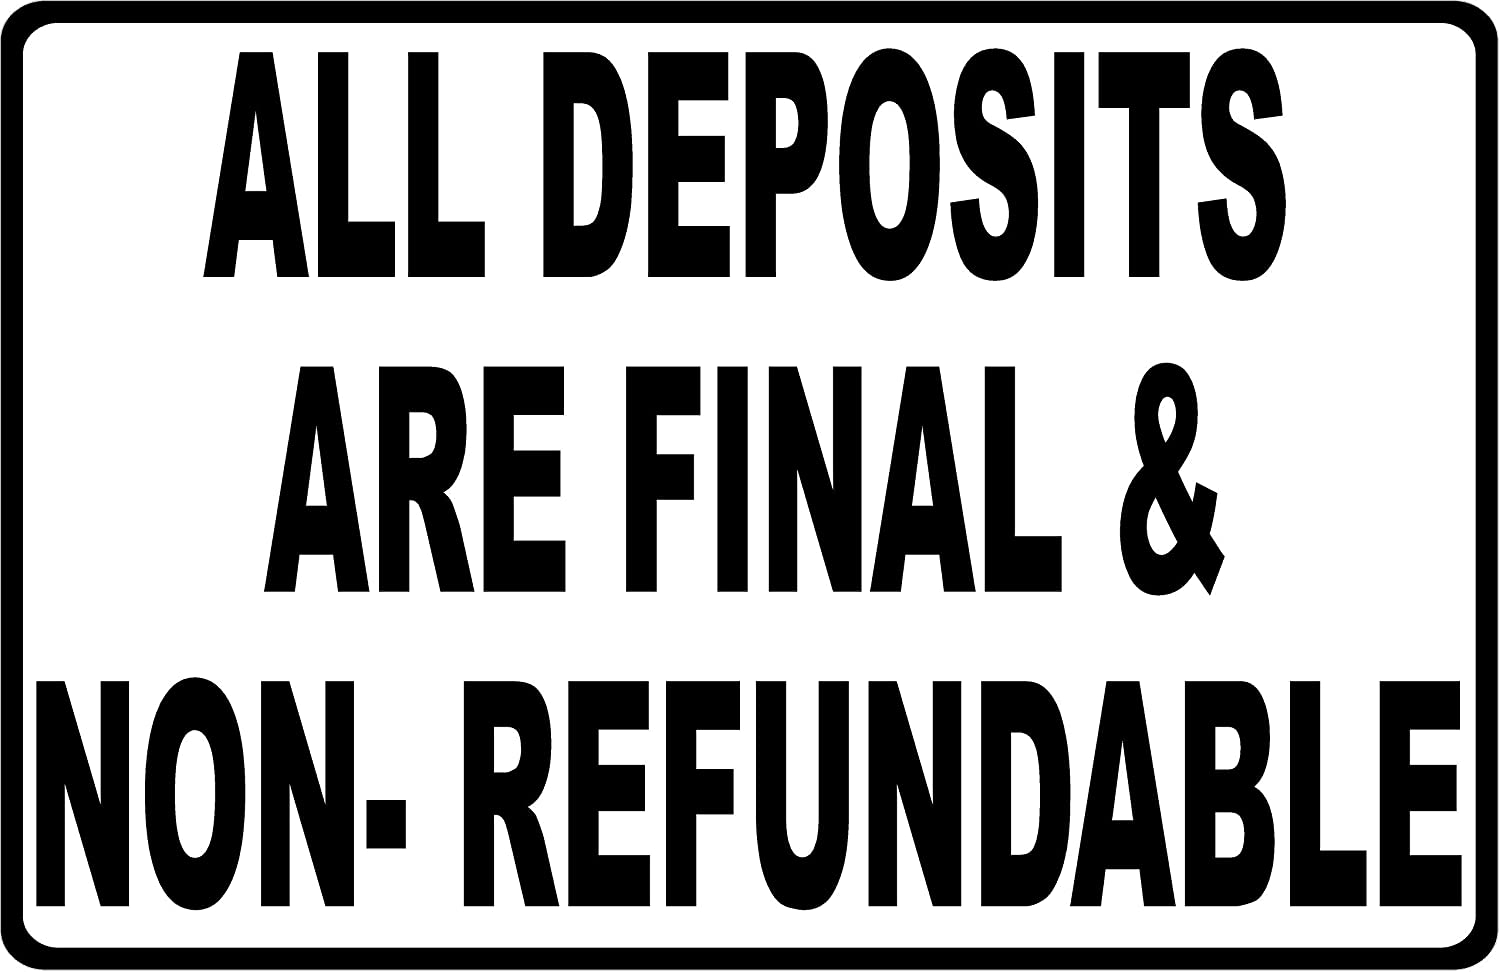 Business Policy All Deposits Are Final /& Non-Refundable Sign 9x12 Metal